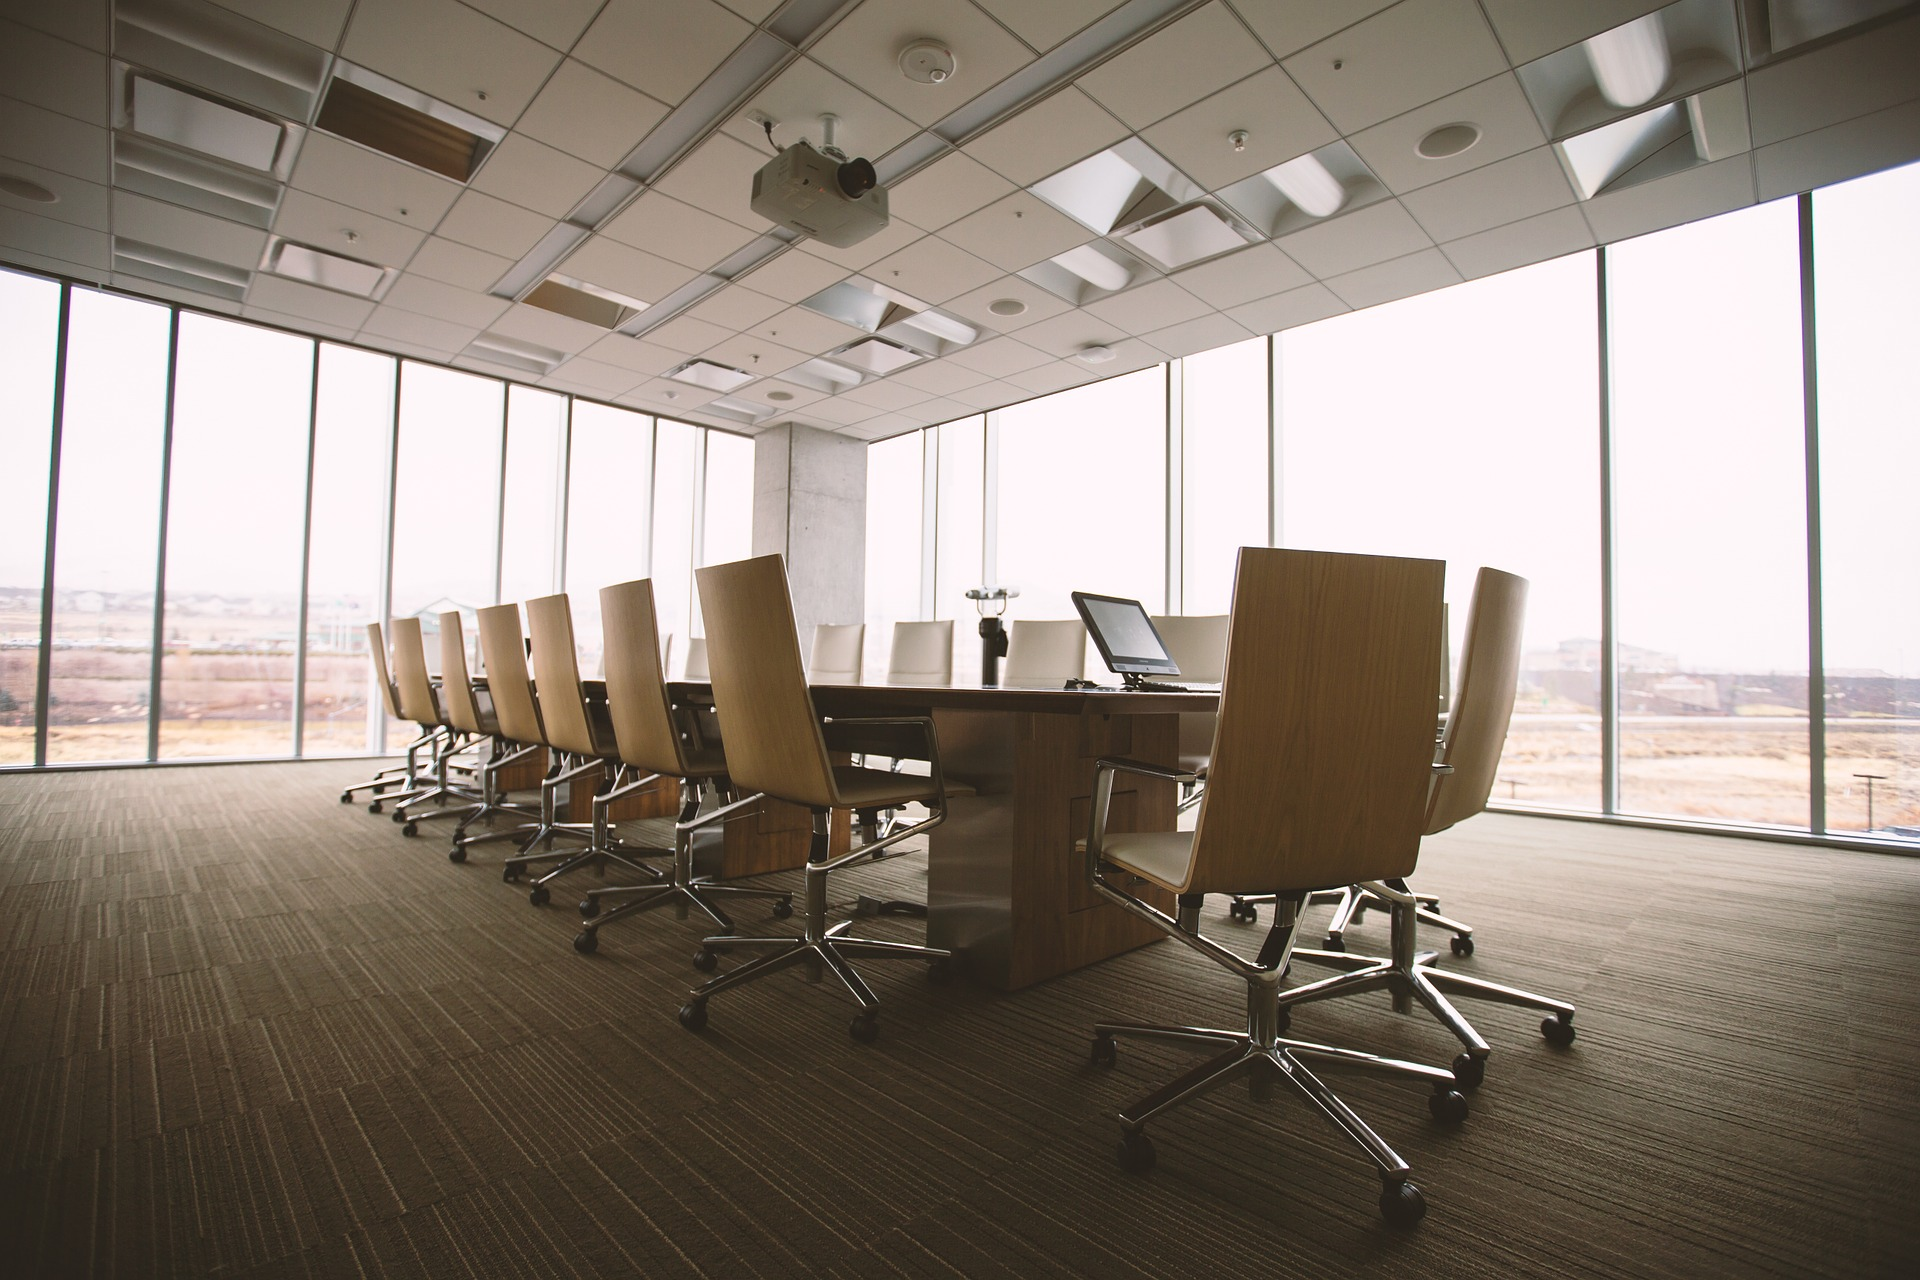 Conference room (image: Pixabay, public domain)